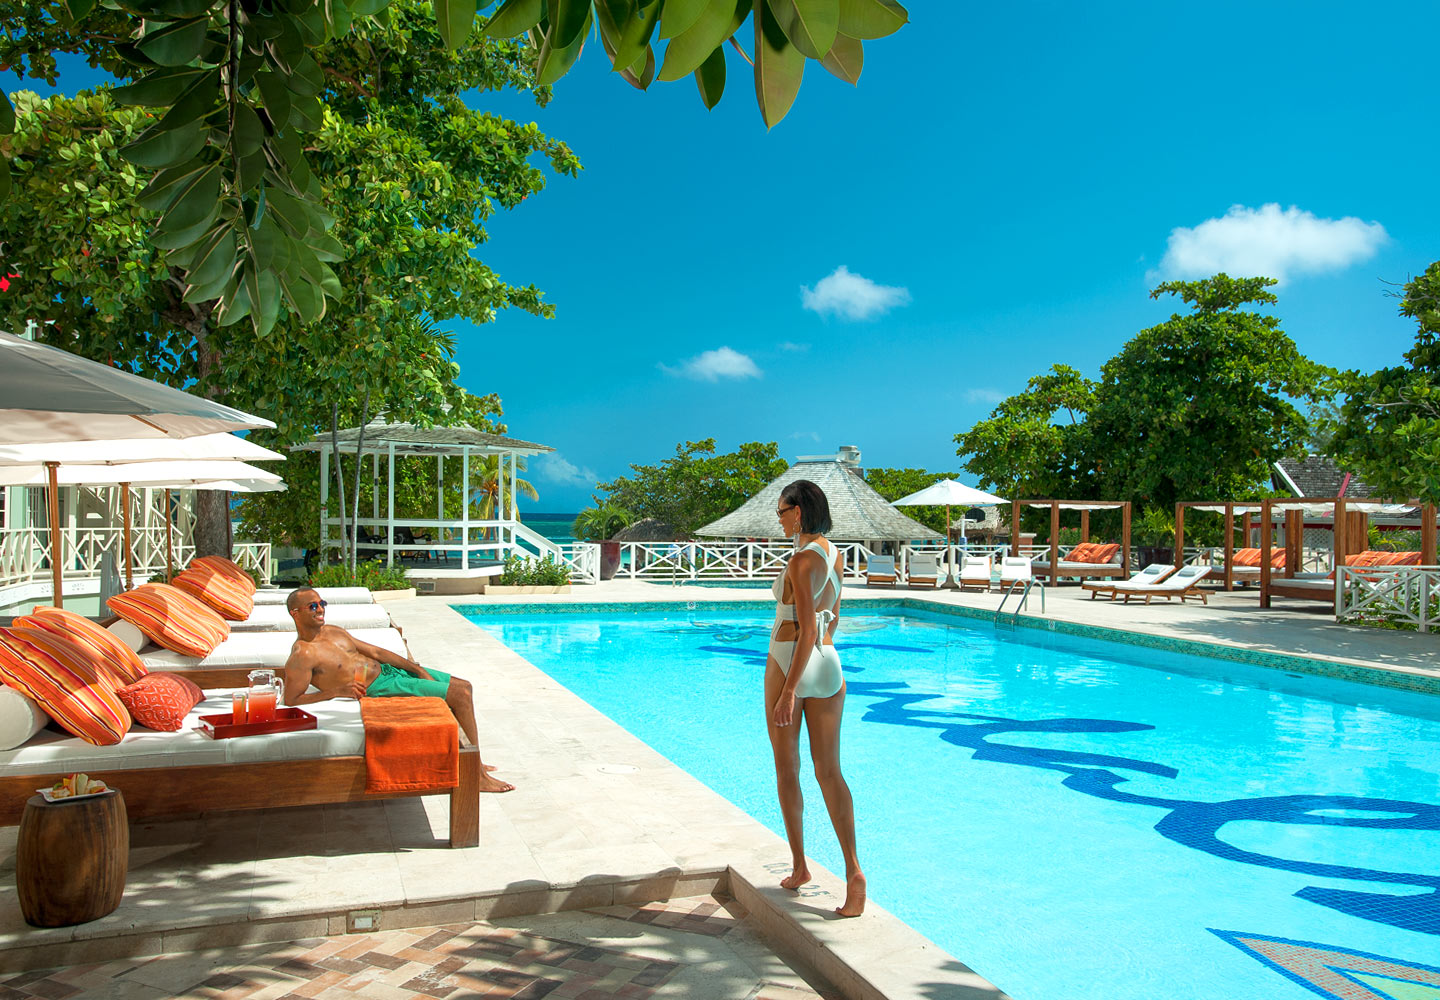 Travel Agency All-Inclusive Resort Sandals Montego Bay 016